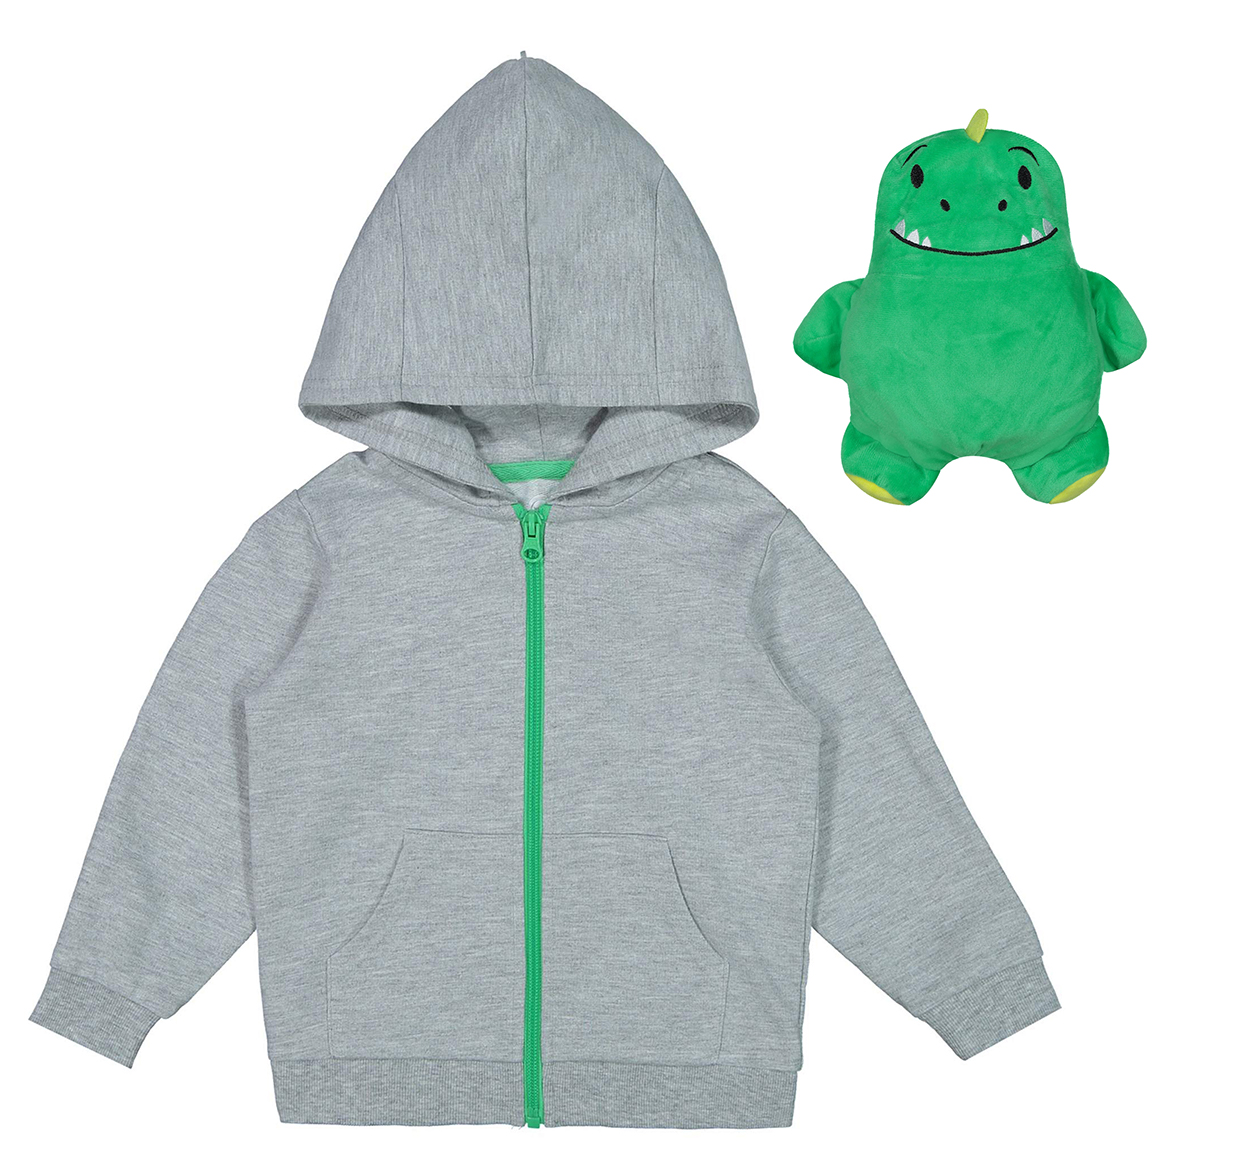 Packable Plush Critter Zip Up Hoodie (Toddler Boys)